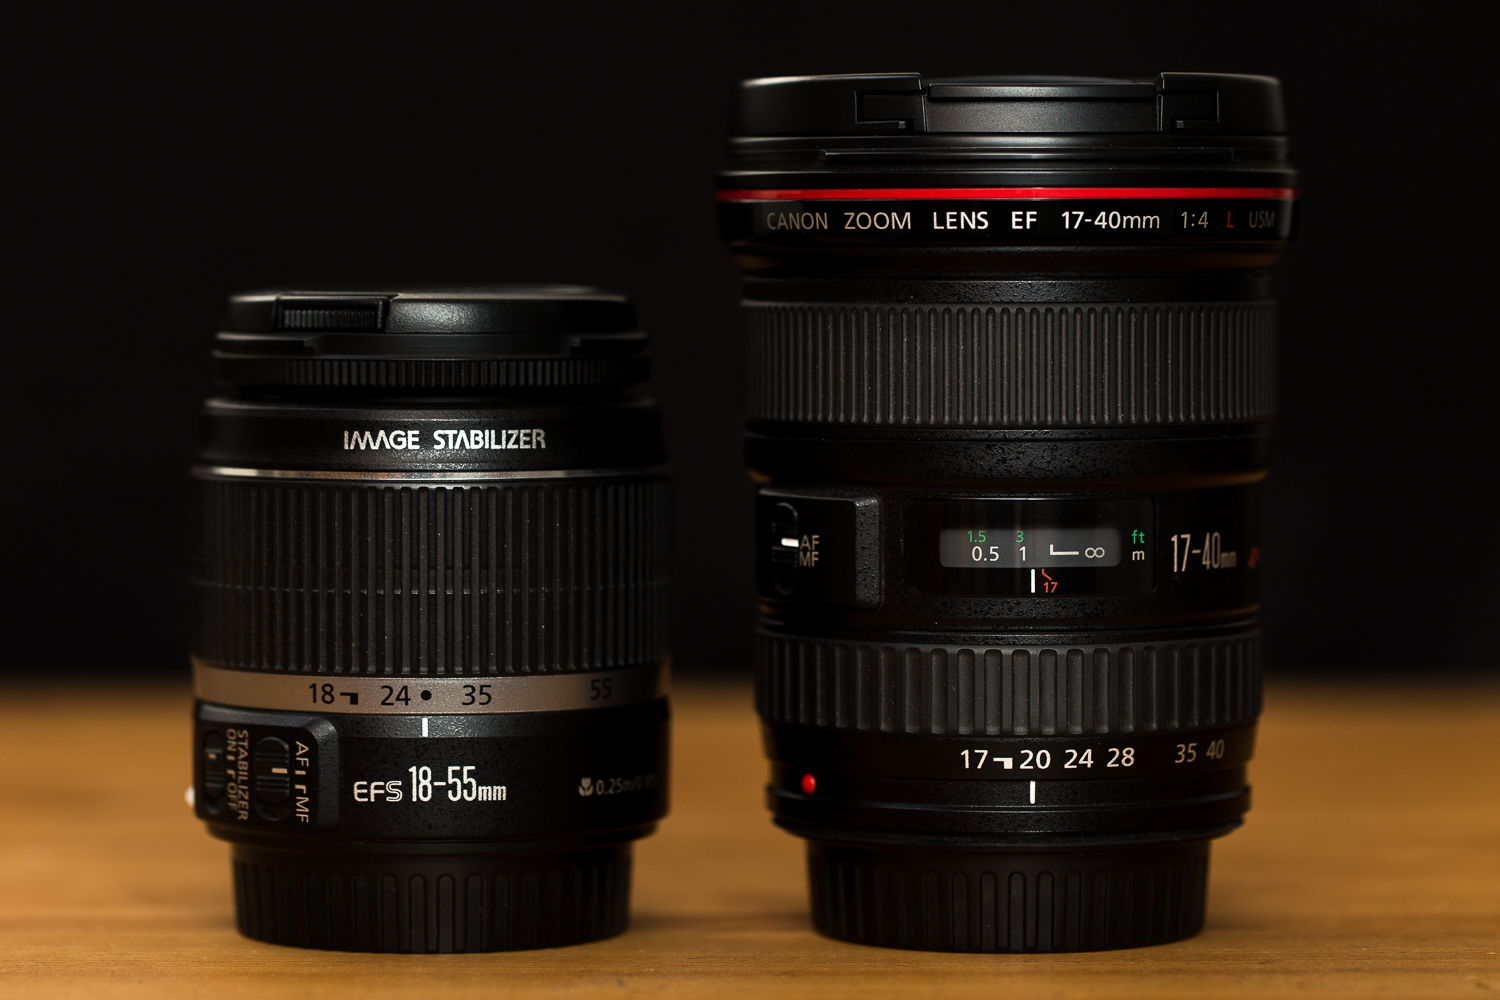 Canon 18-55 IS et 17-40 f/4